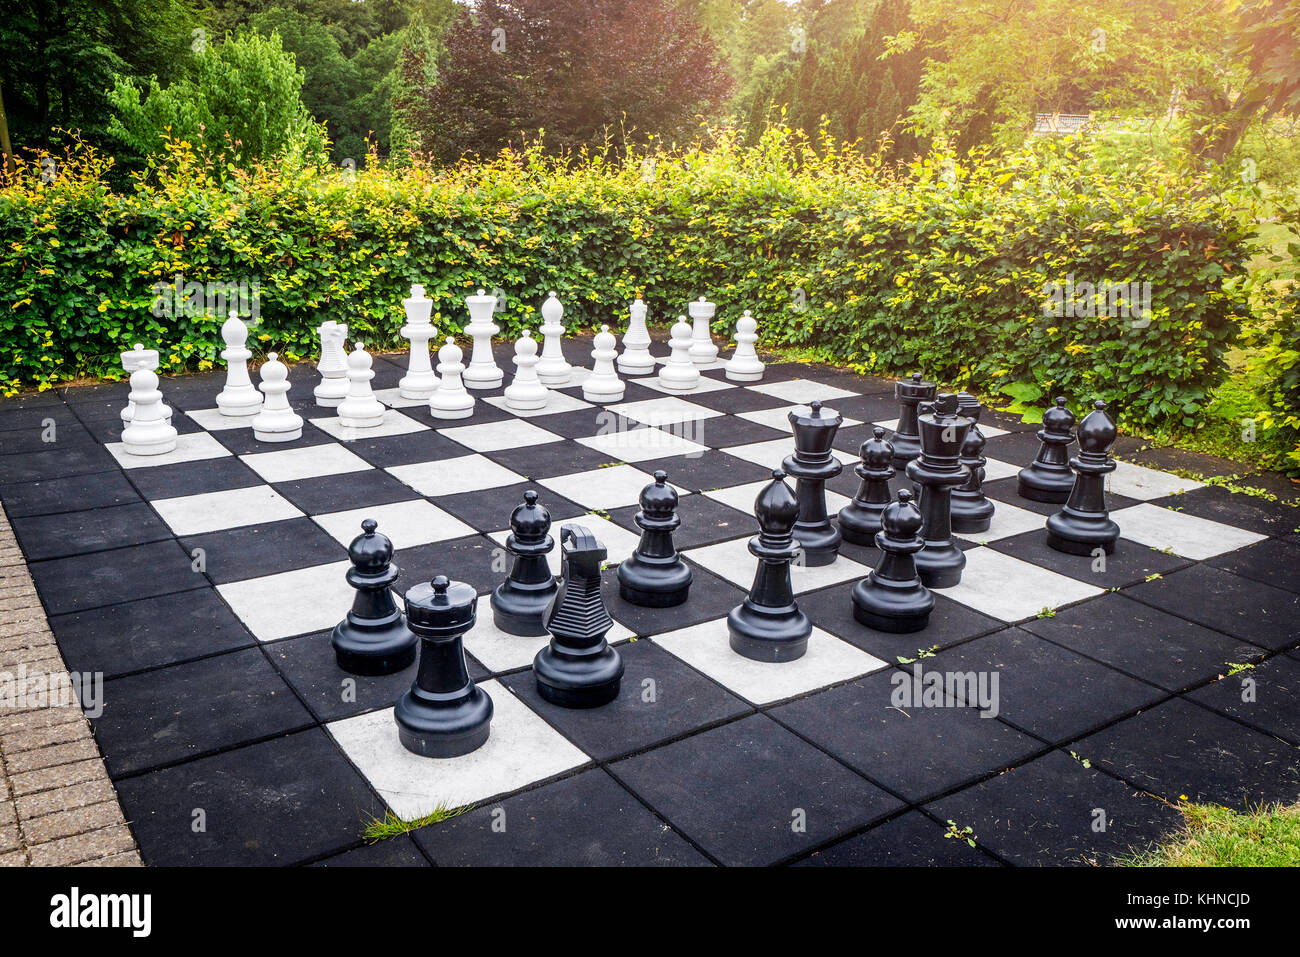 Large outdoor chess game on a garden terrace in a yard with a green hedge and sunshine - Stock Image